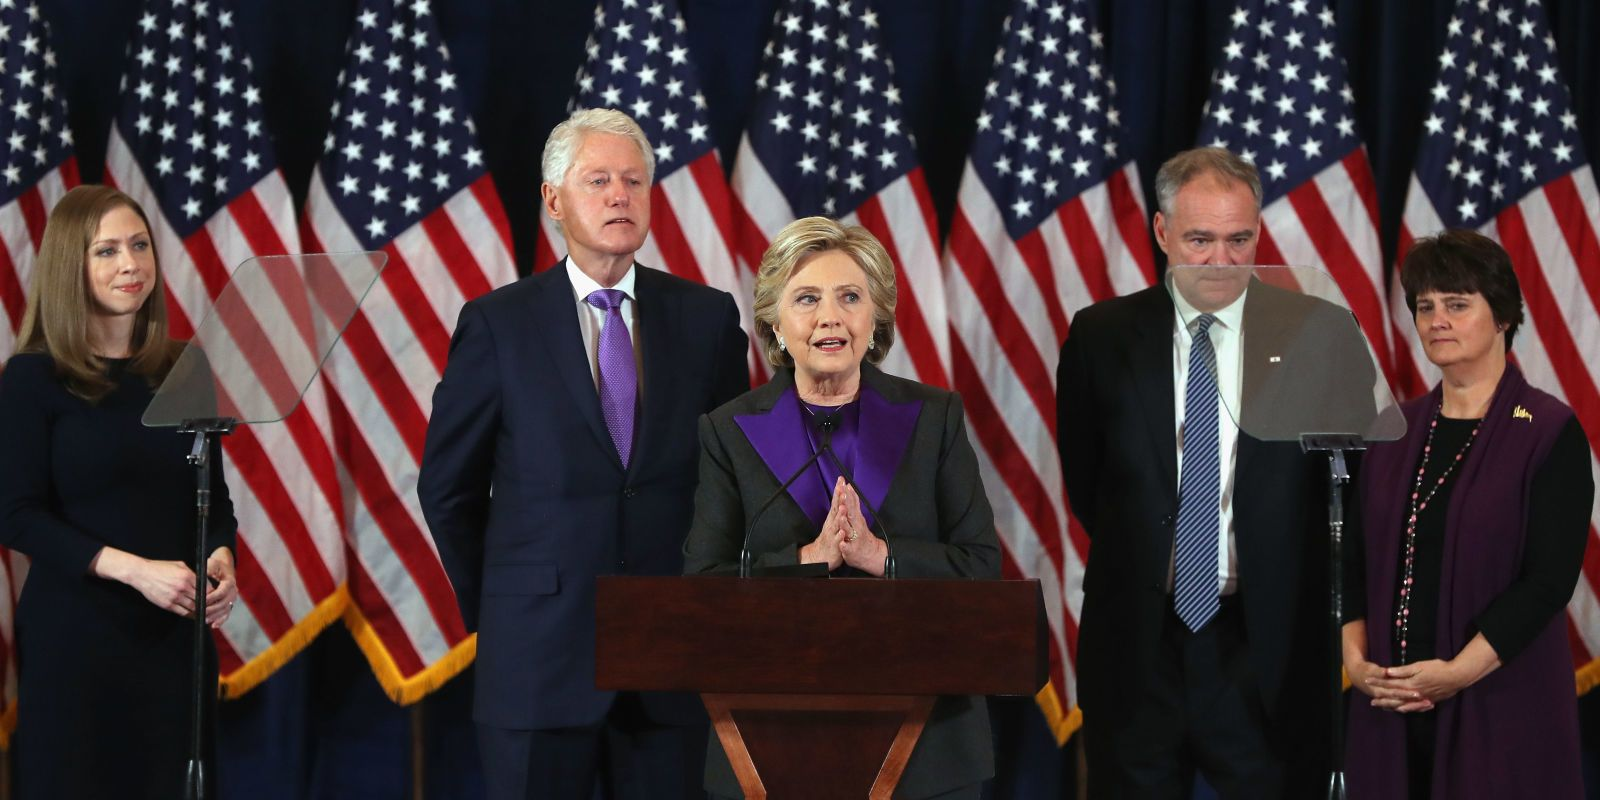 Hillary Clinton Delivered a Heartbreaking Concession Speech